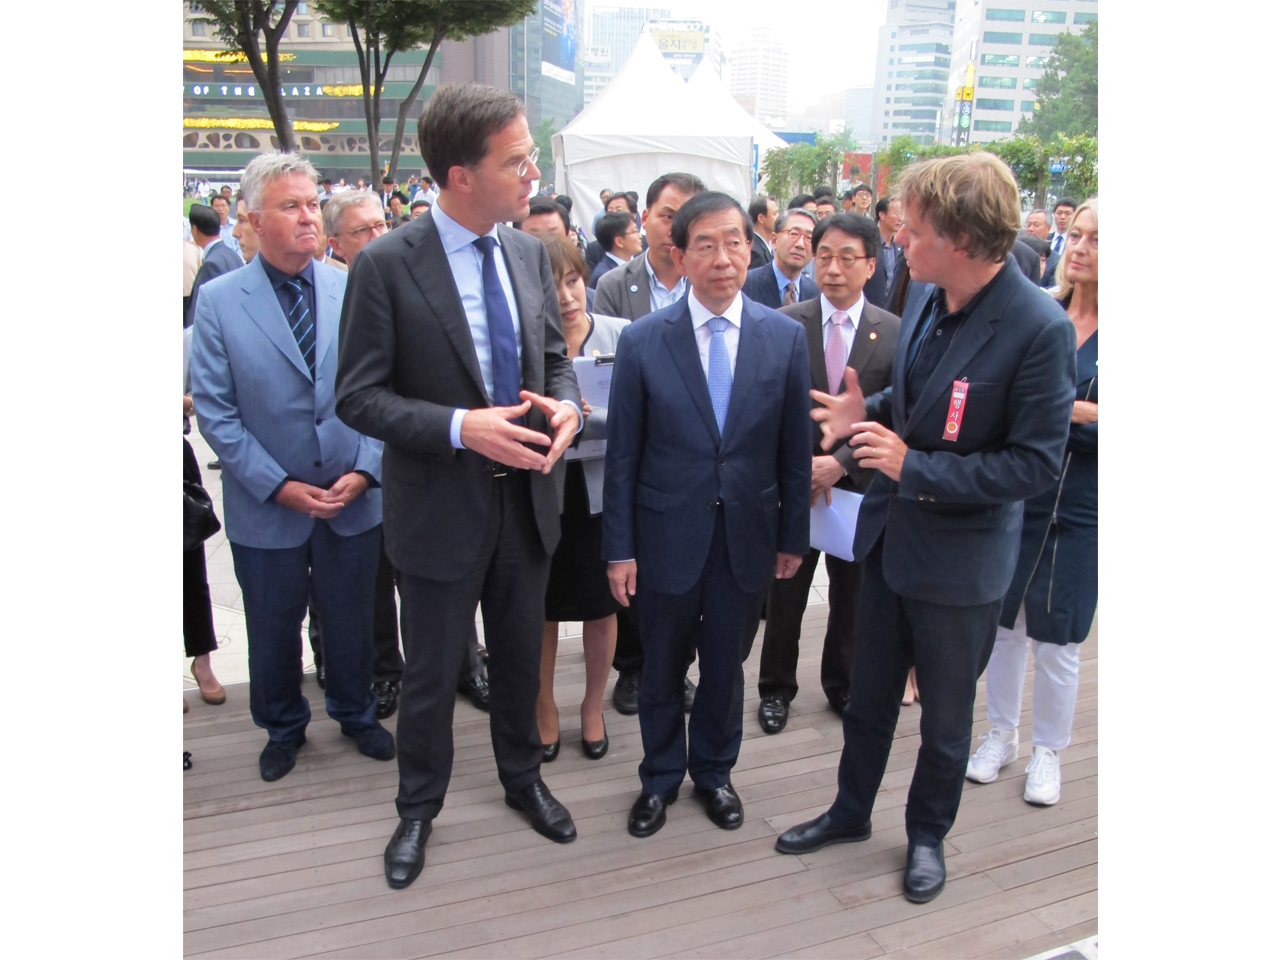 MVRDV and Dutch Prime Minister, Mark Rutte visit South Korea